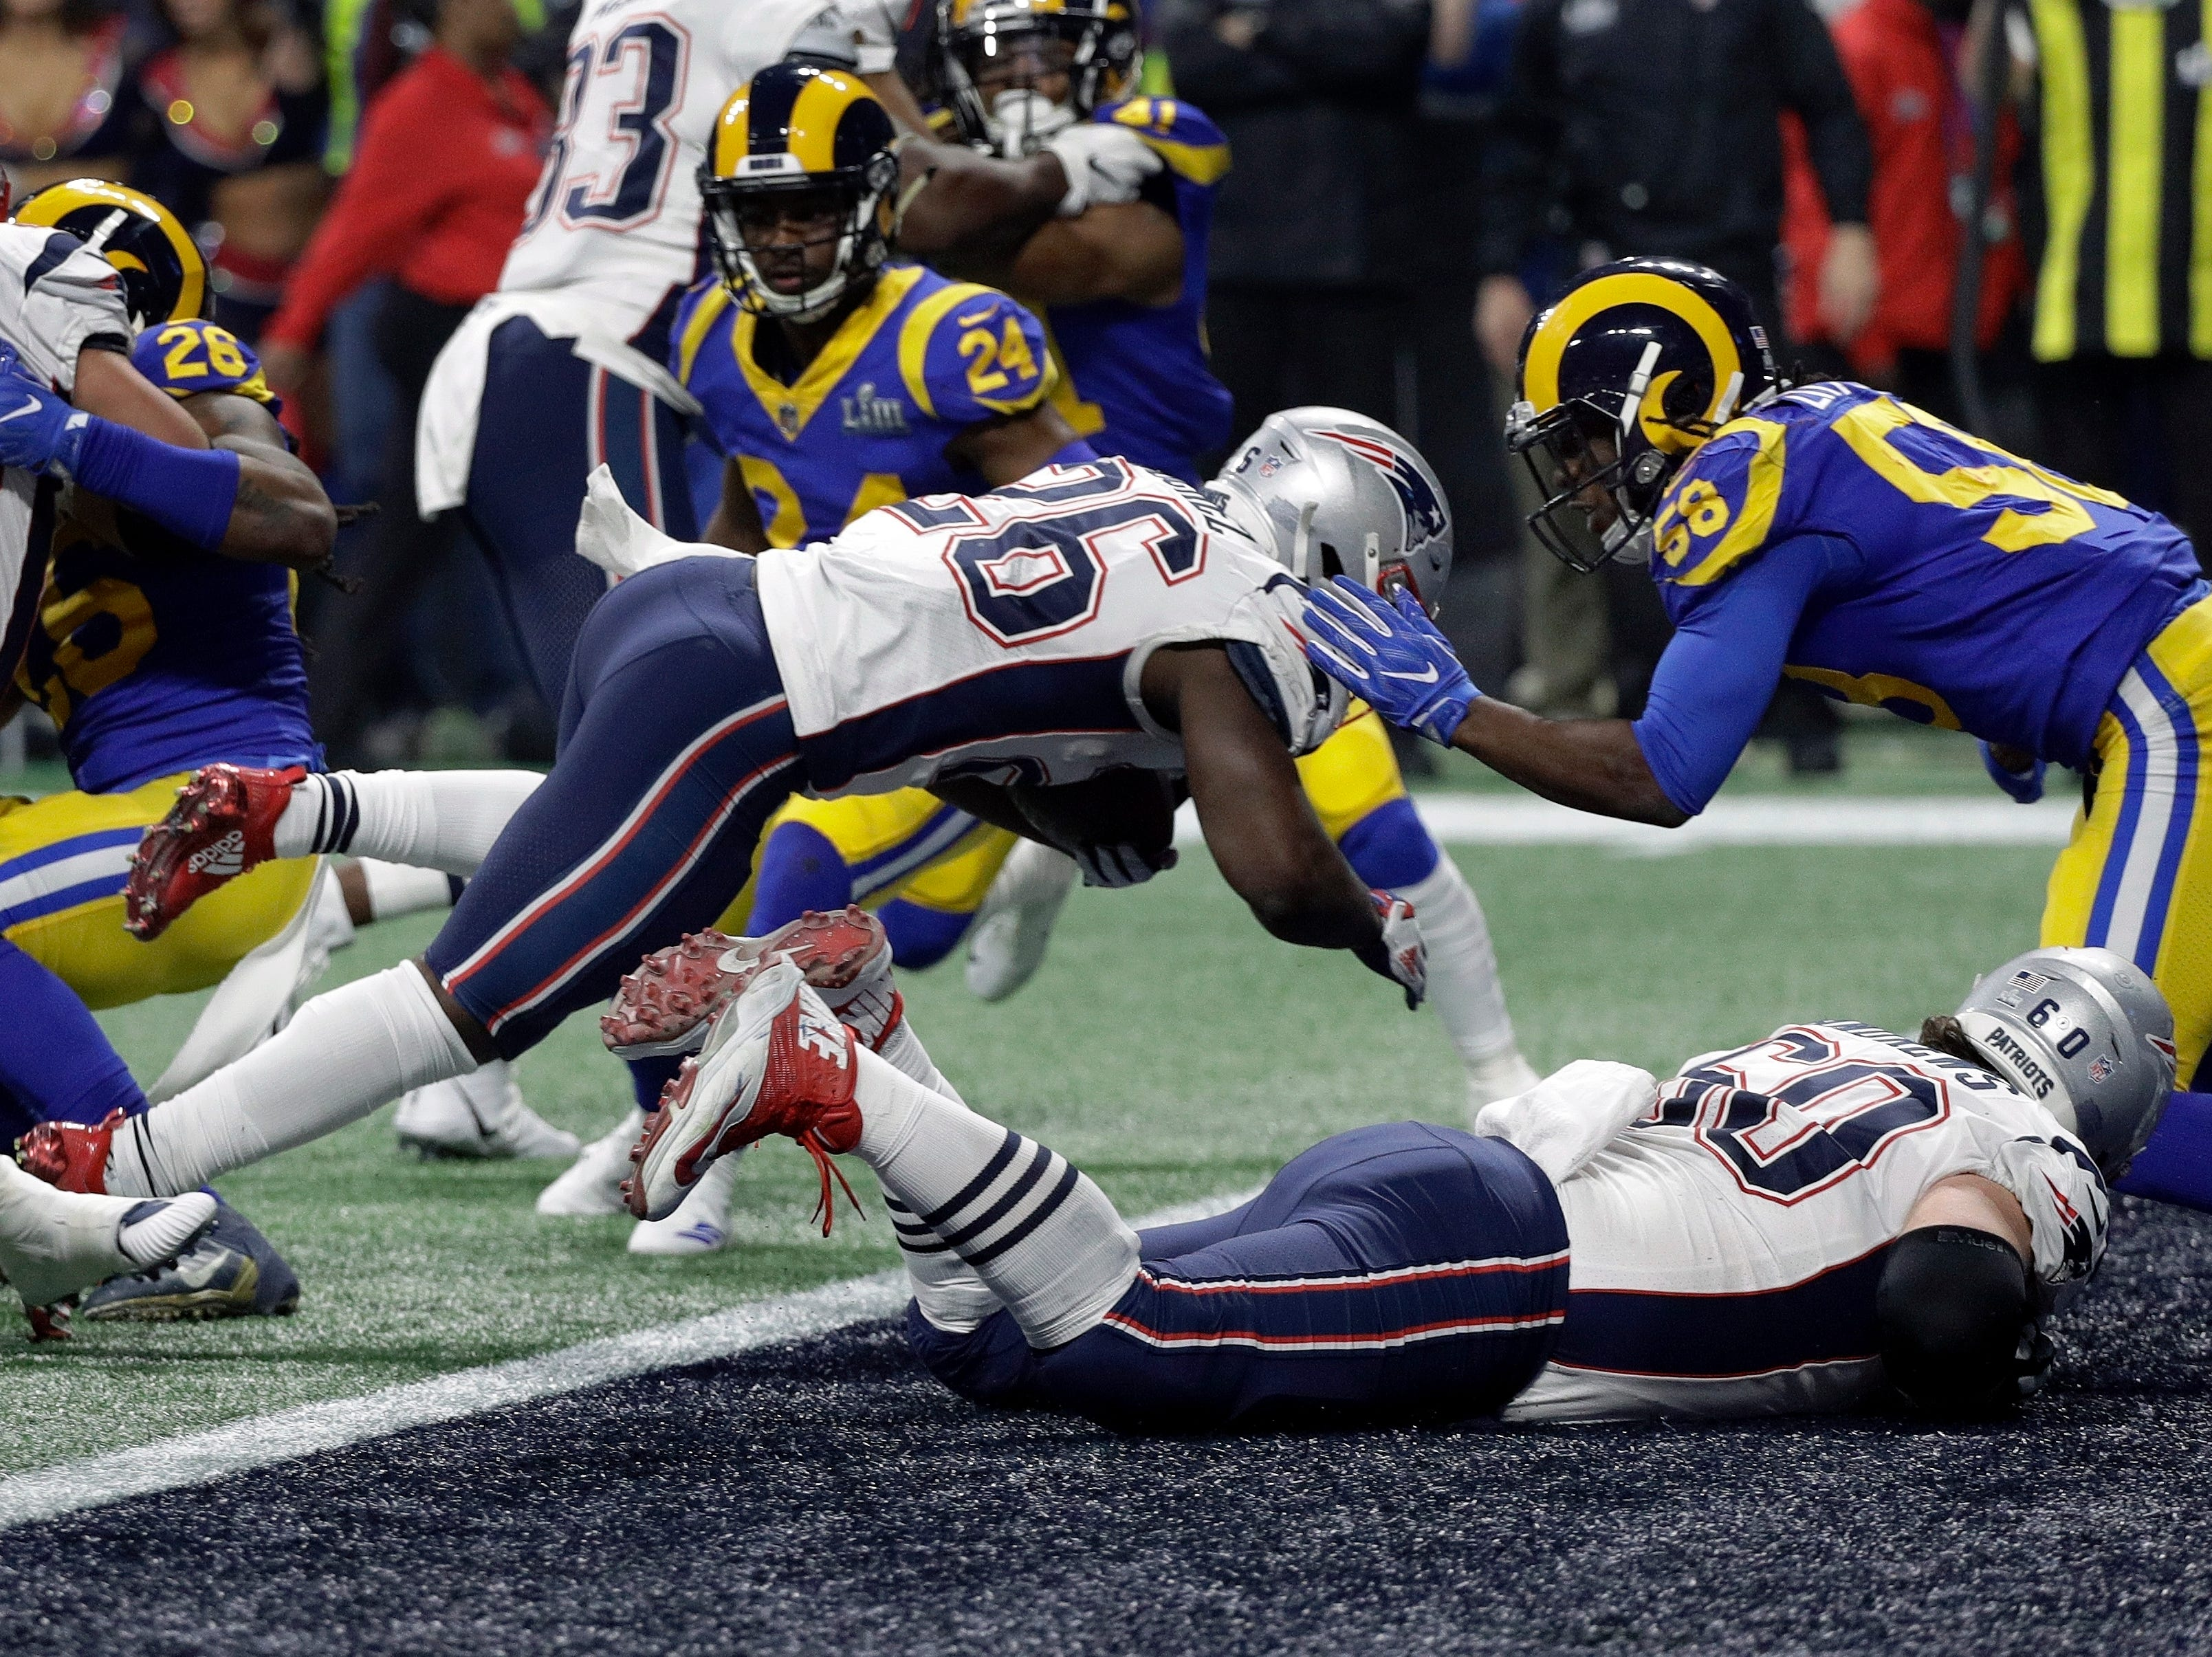 New England Patriots' Sony Michel (26) dives over the goal line for a touchdown in front of Los Angeles Rams' Cory Littleton (58) during the second half.